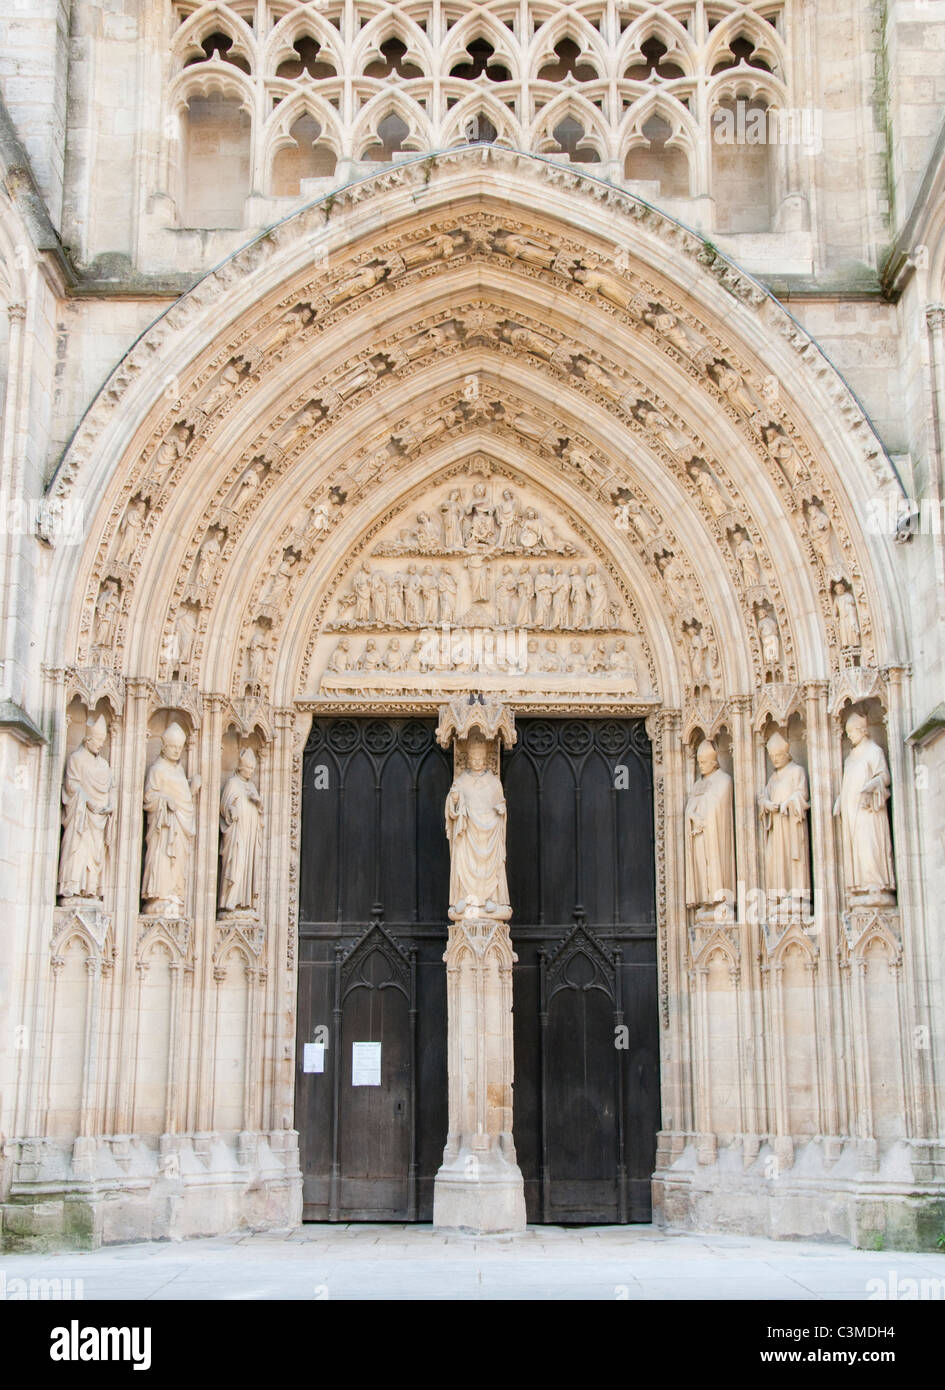 Cathedral Saint Andre in the City of Bordeaux, France Europe EU - Stock Image